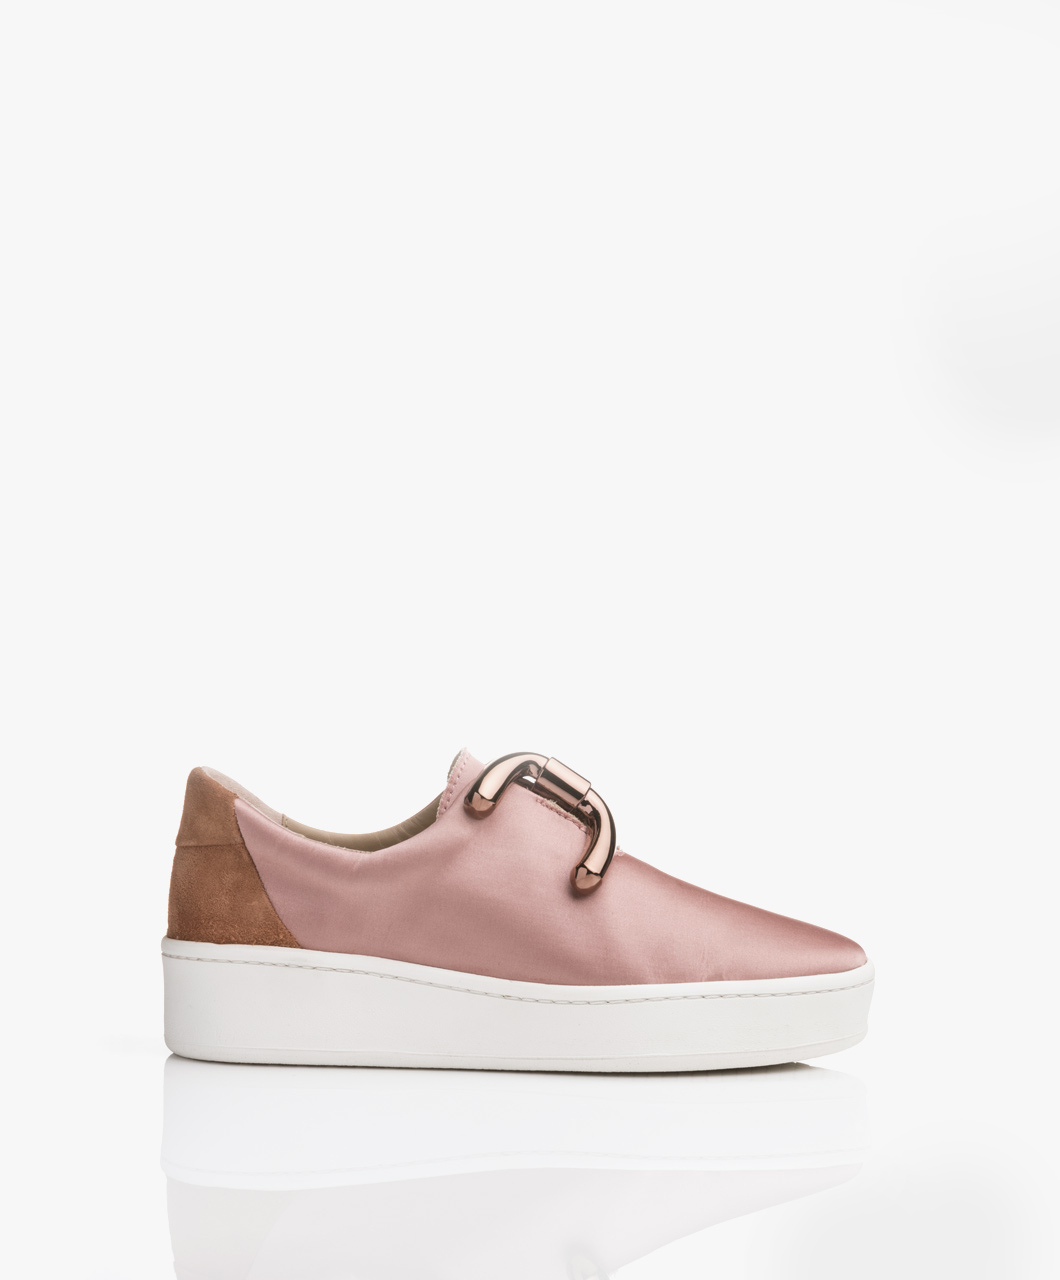 Immagine di An Hour And A Shower Sneakers Knot Low in Satin Brick Pink